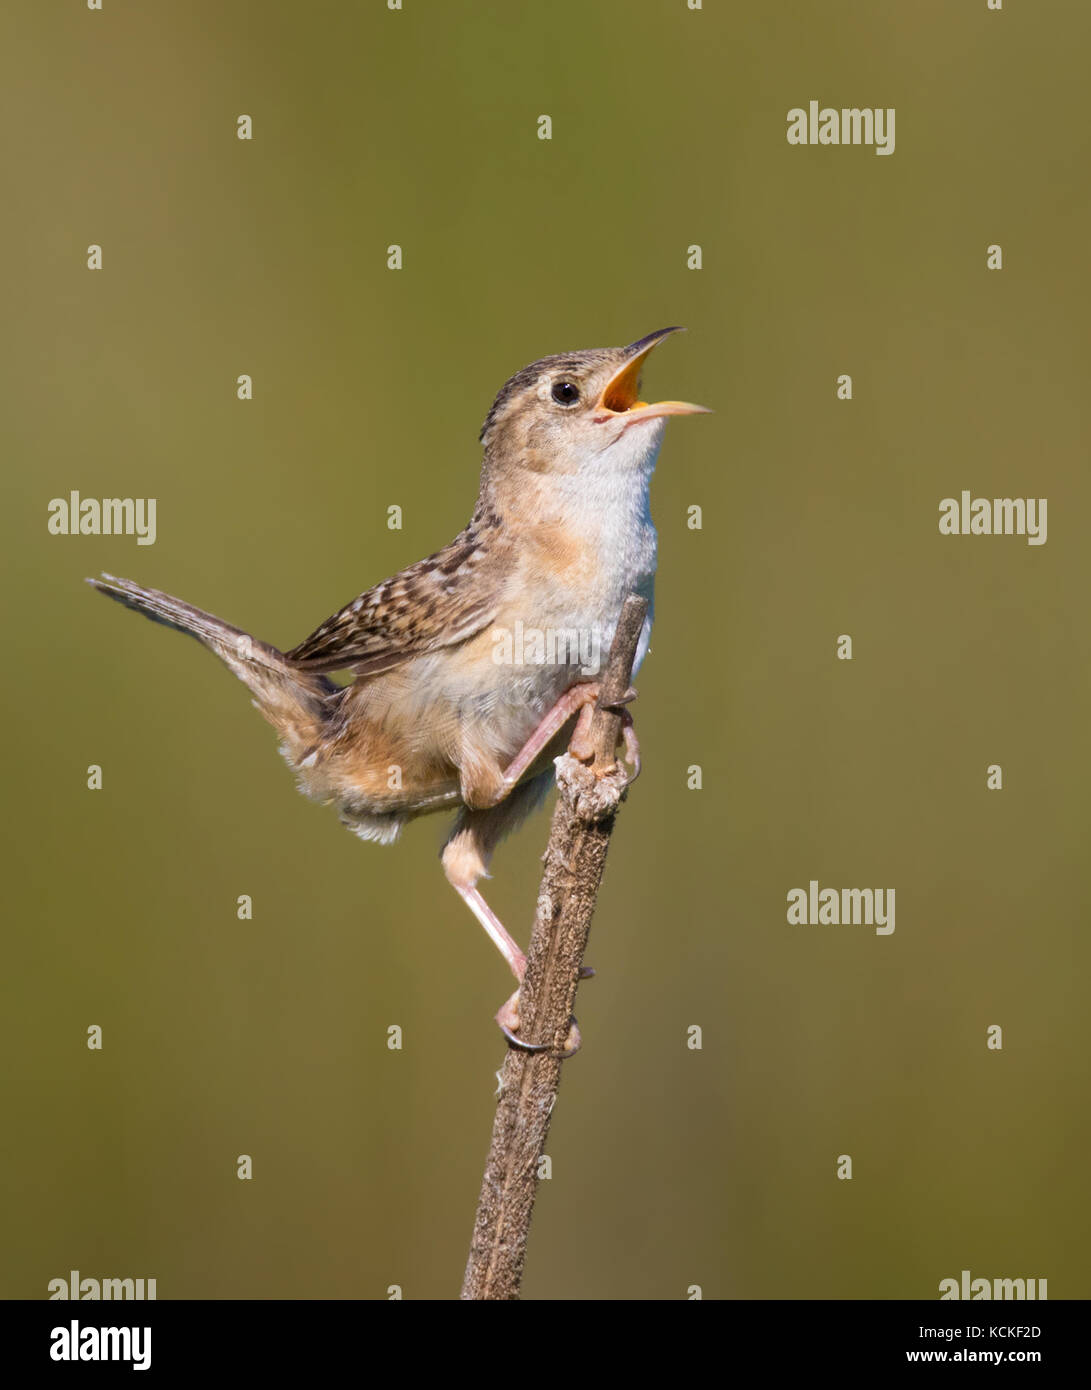 A Sedge Wren, Cistothorus platensis, sings from a perch near Saskatoon, Saskatchewan Stock Photo